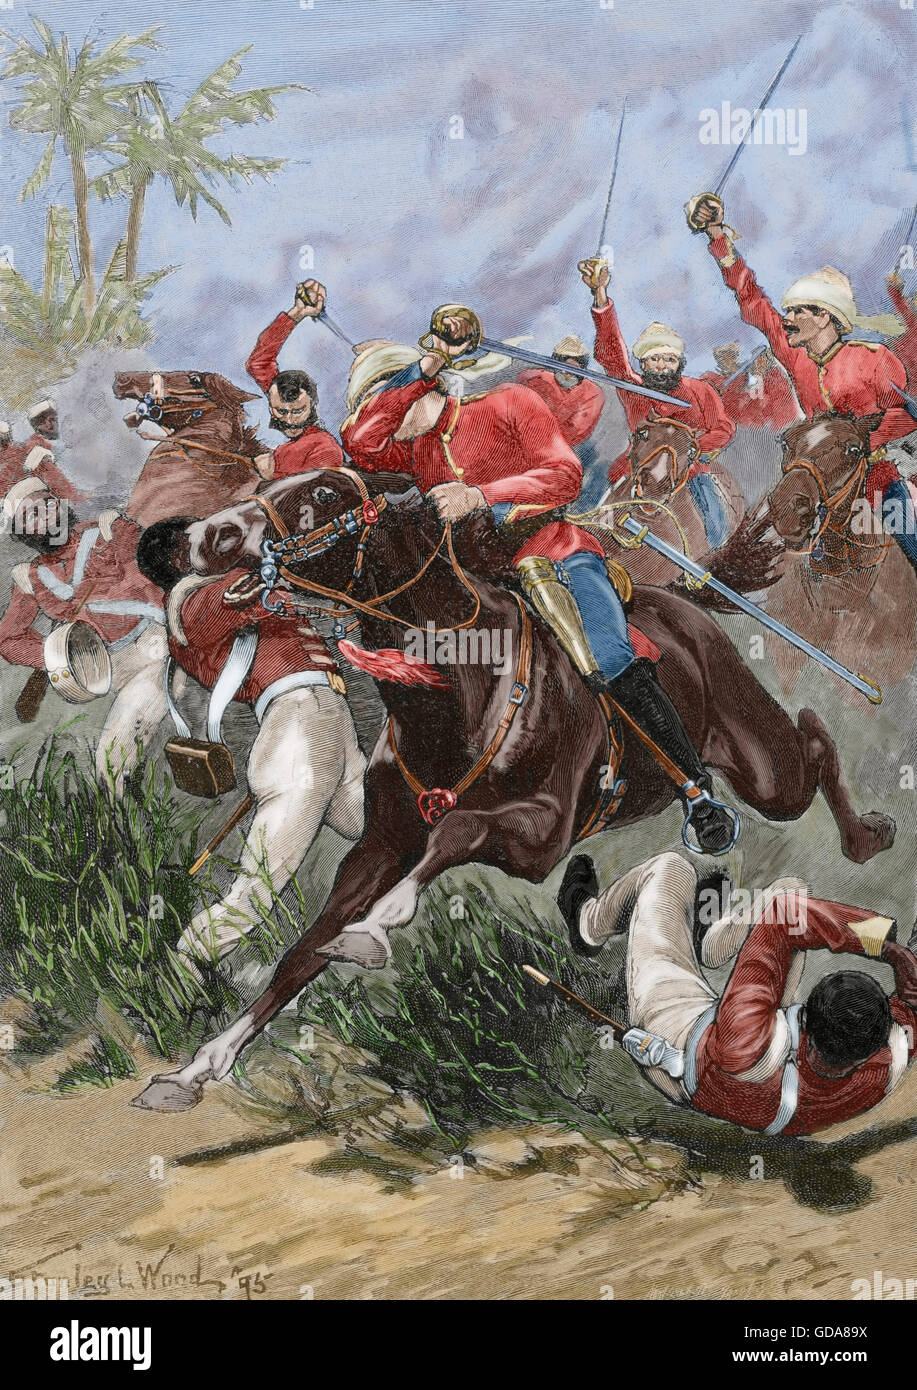 1857 rebellion The rebellion is also known as india's first war of independence, the great rebellion, the indian mutiny, the revolt of 1857, the uprising of 1857, the sepoy rebellion and the sepoy mutiny the mutiny was a result of various grievances.